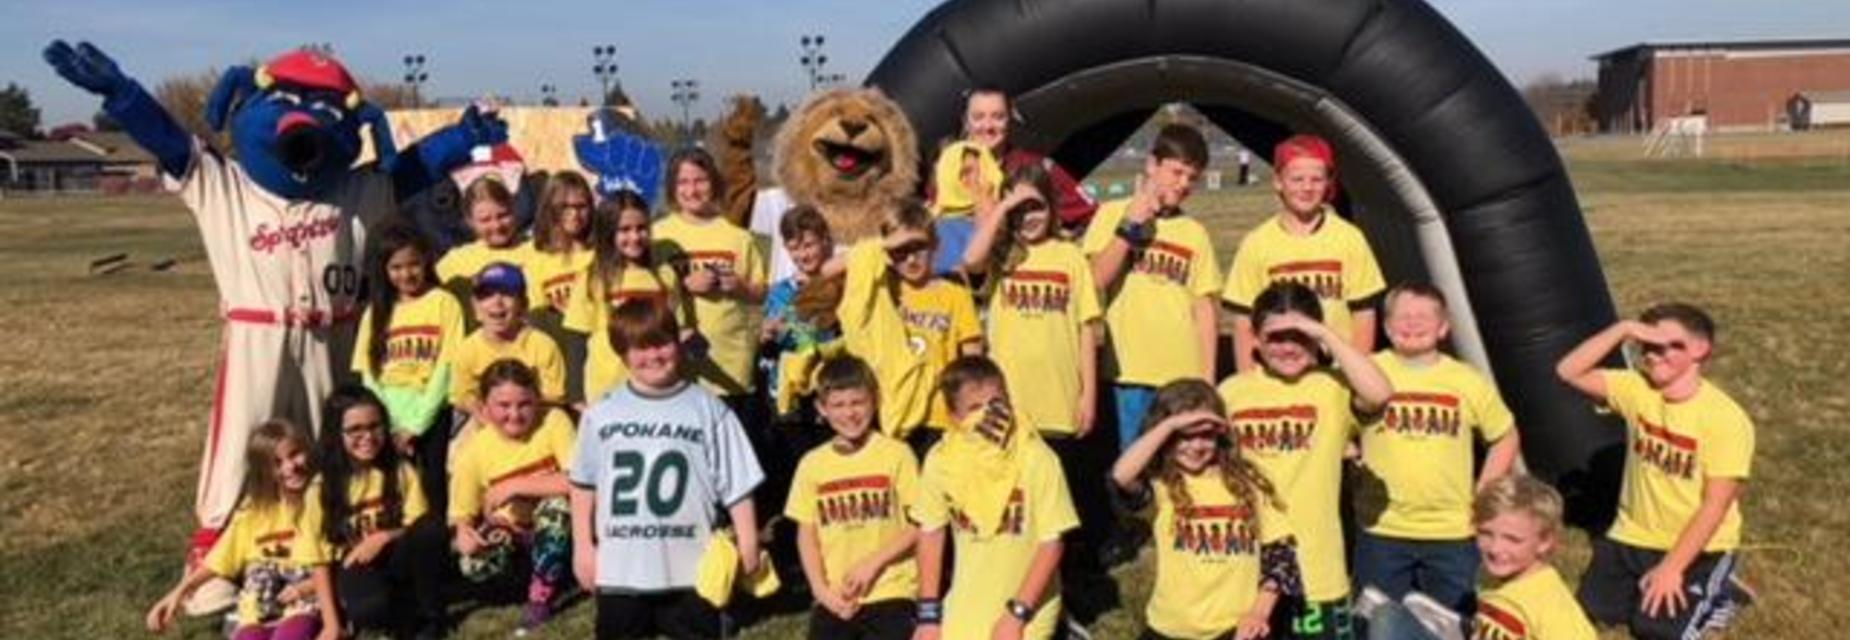 Fund Run Runners with Otto